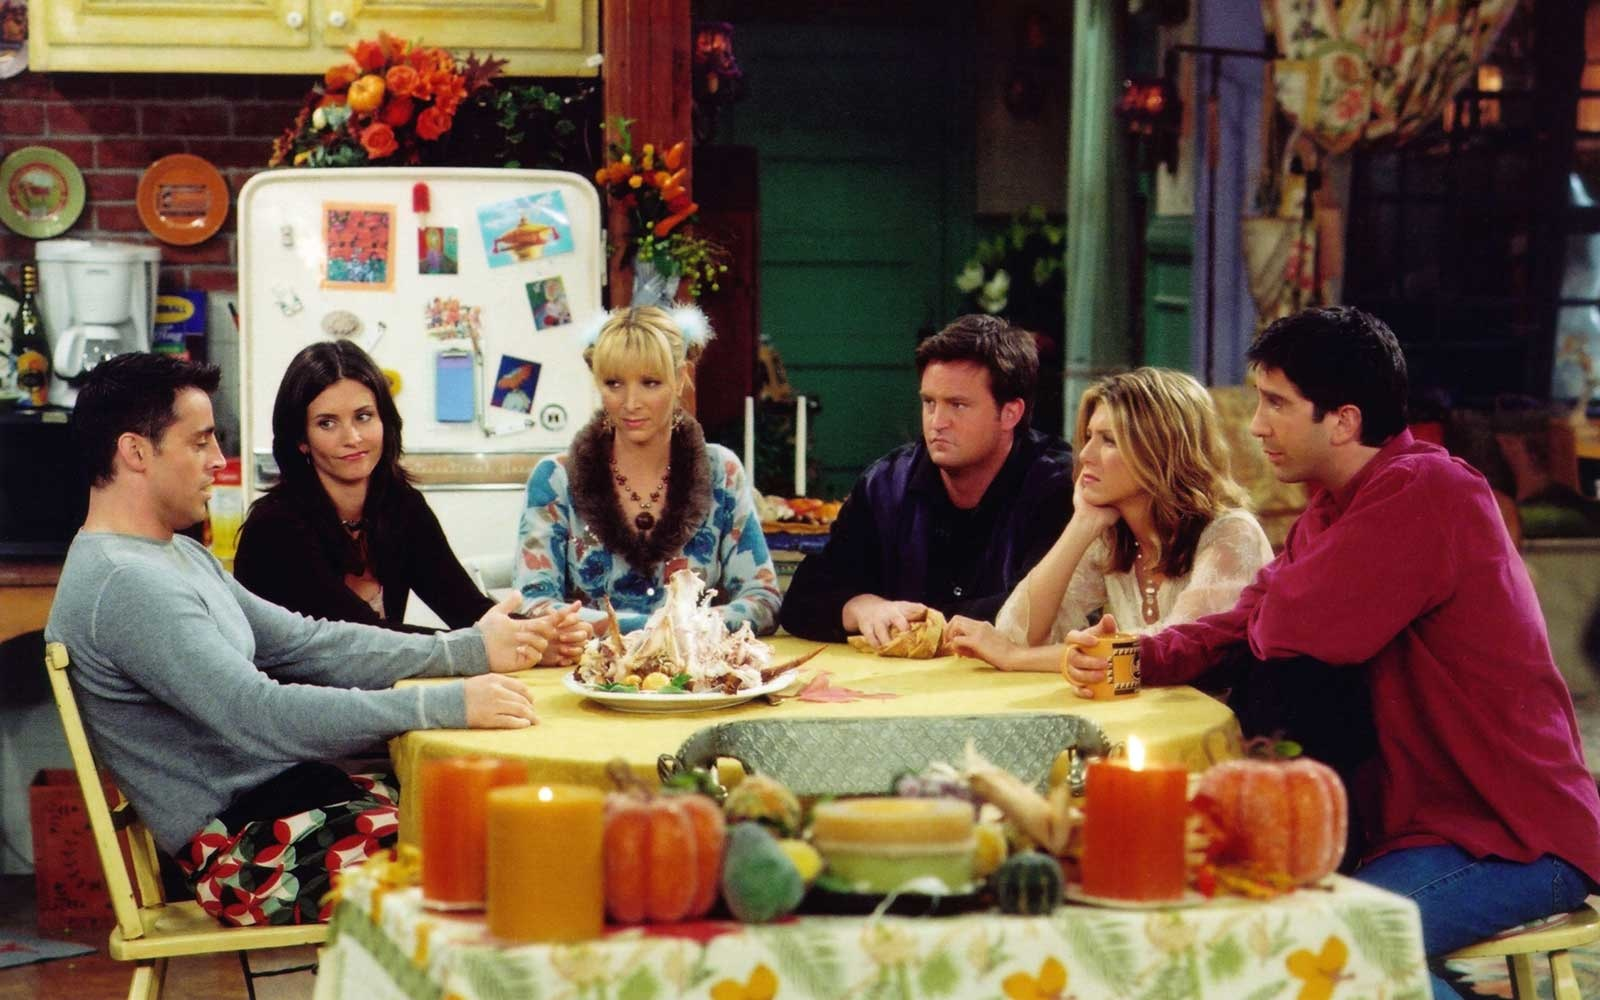 Scene from the television show, Friends